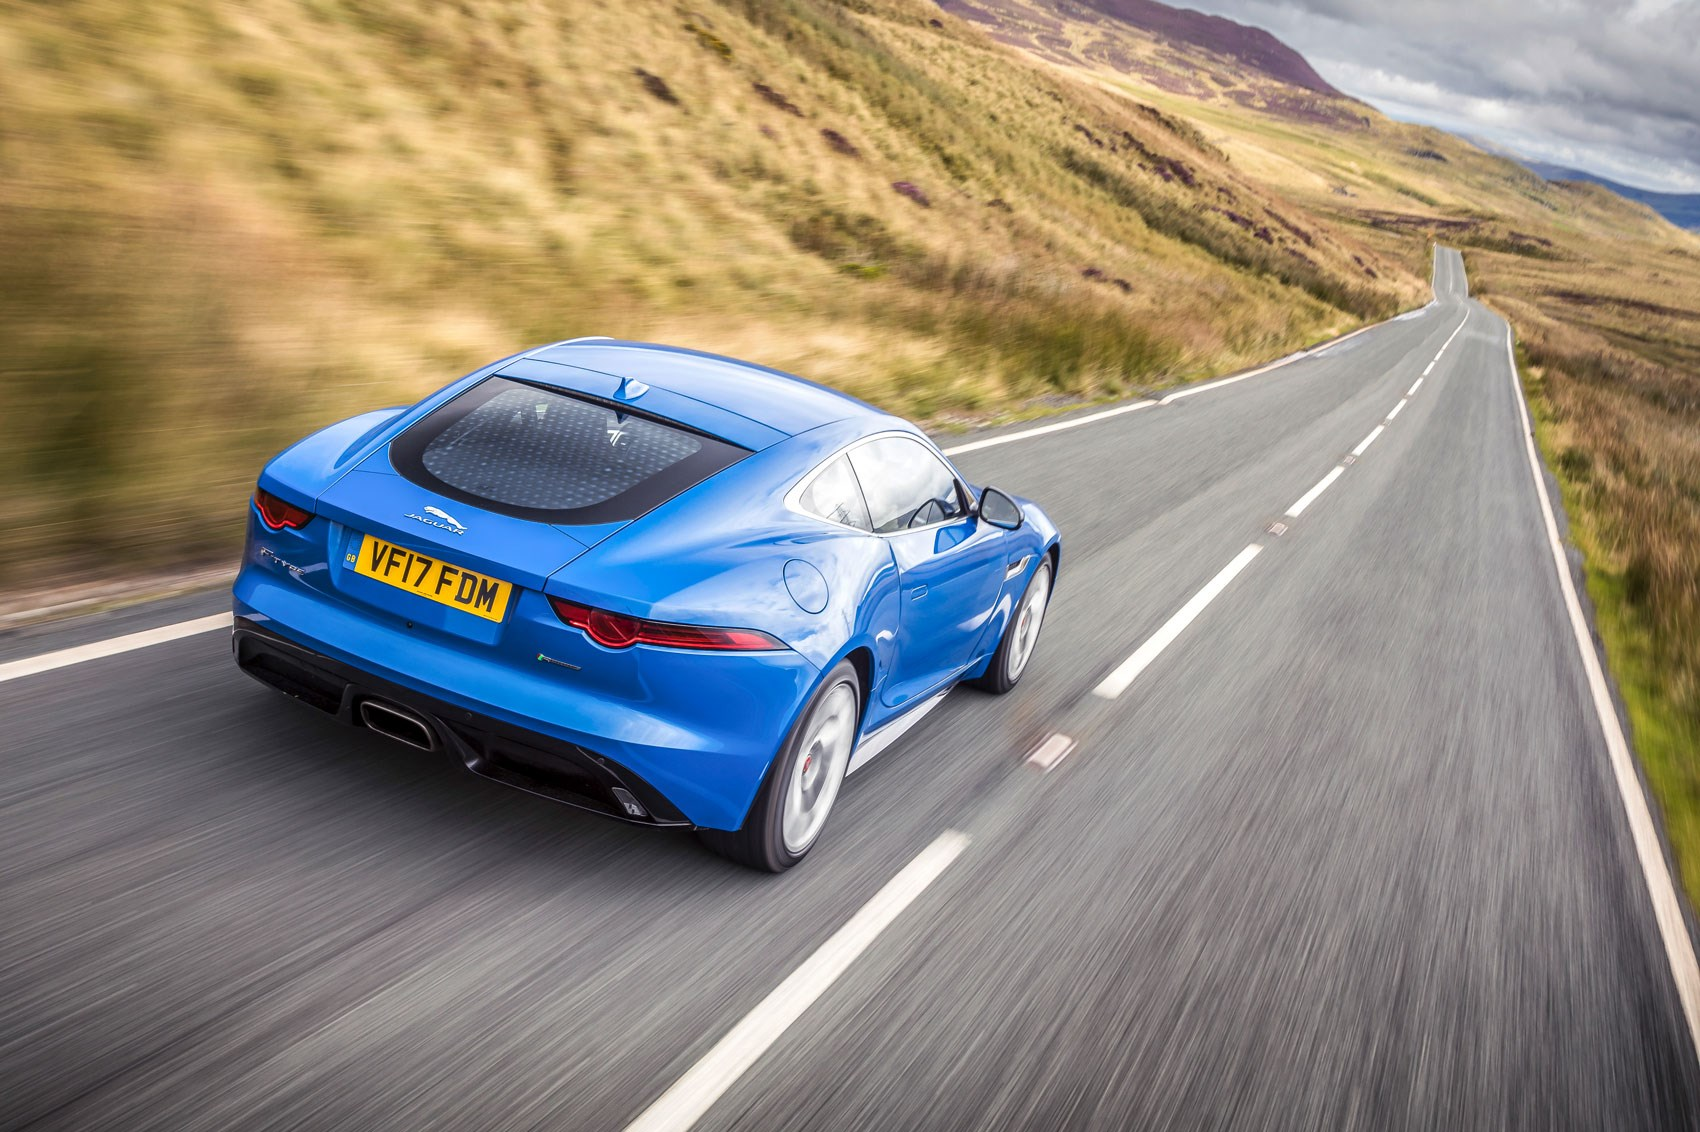 Jaguar F-type 4cyl rear tracking